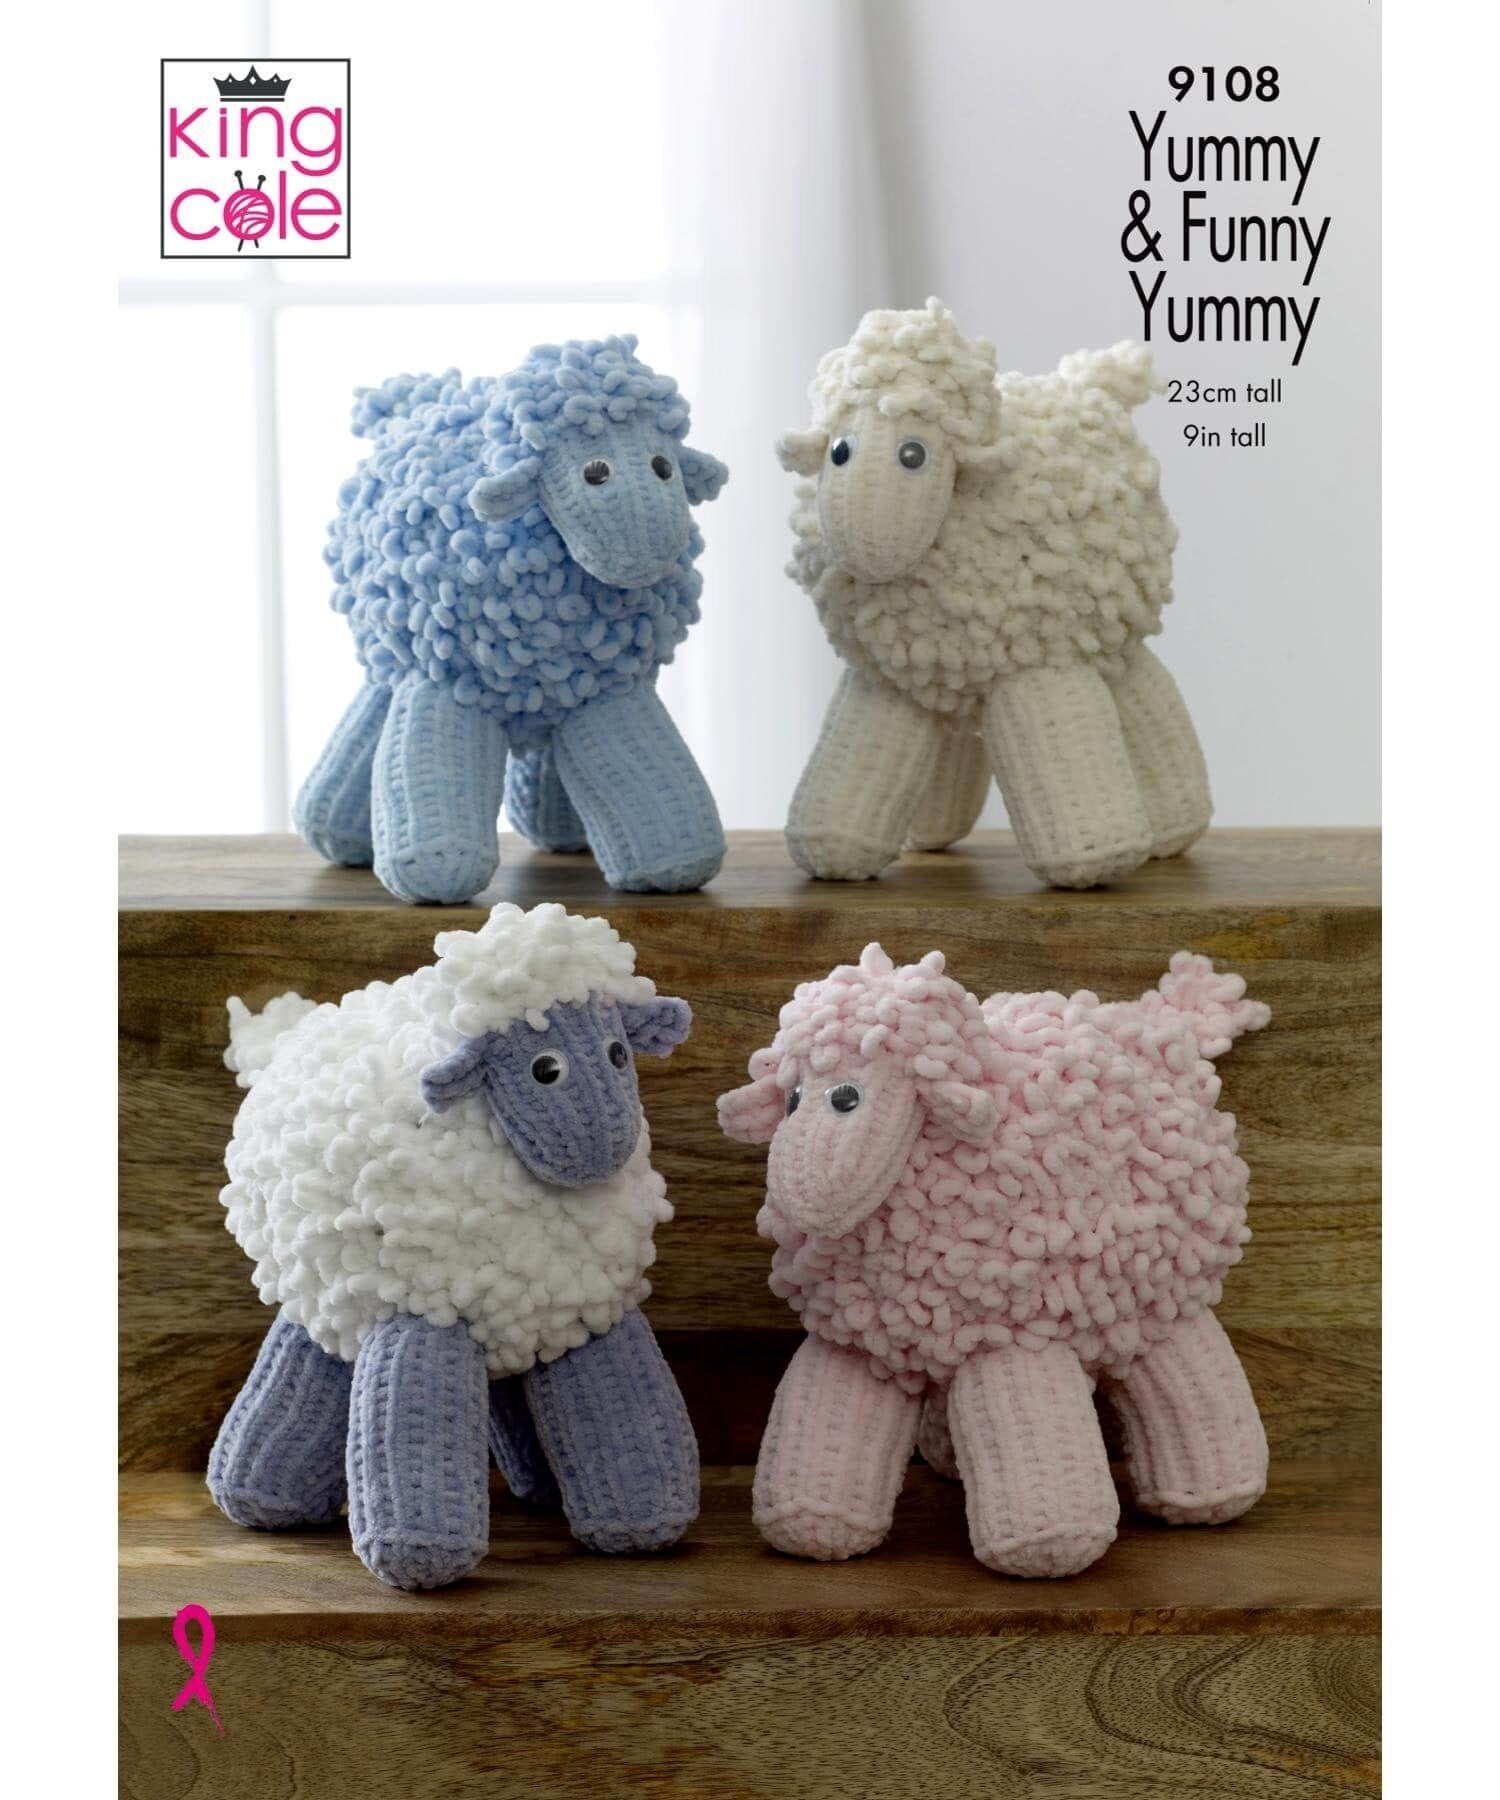 KinCole - Yummy Sheep Pattern - 9108 - Irish Crafts